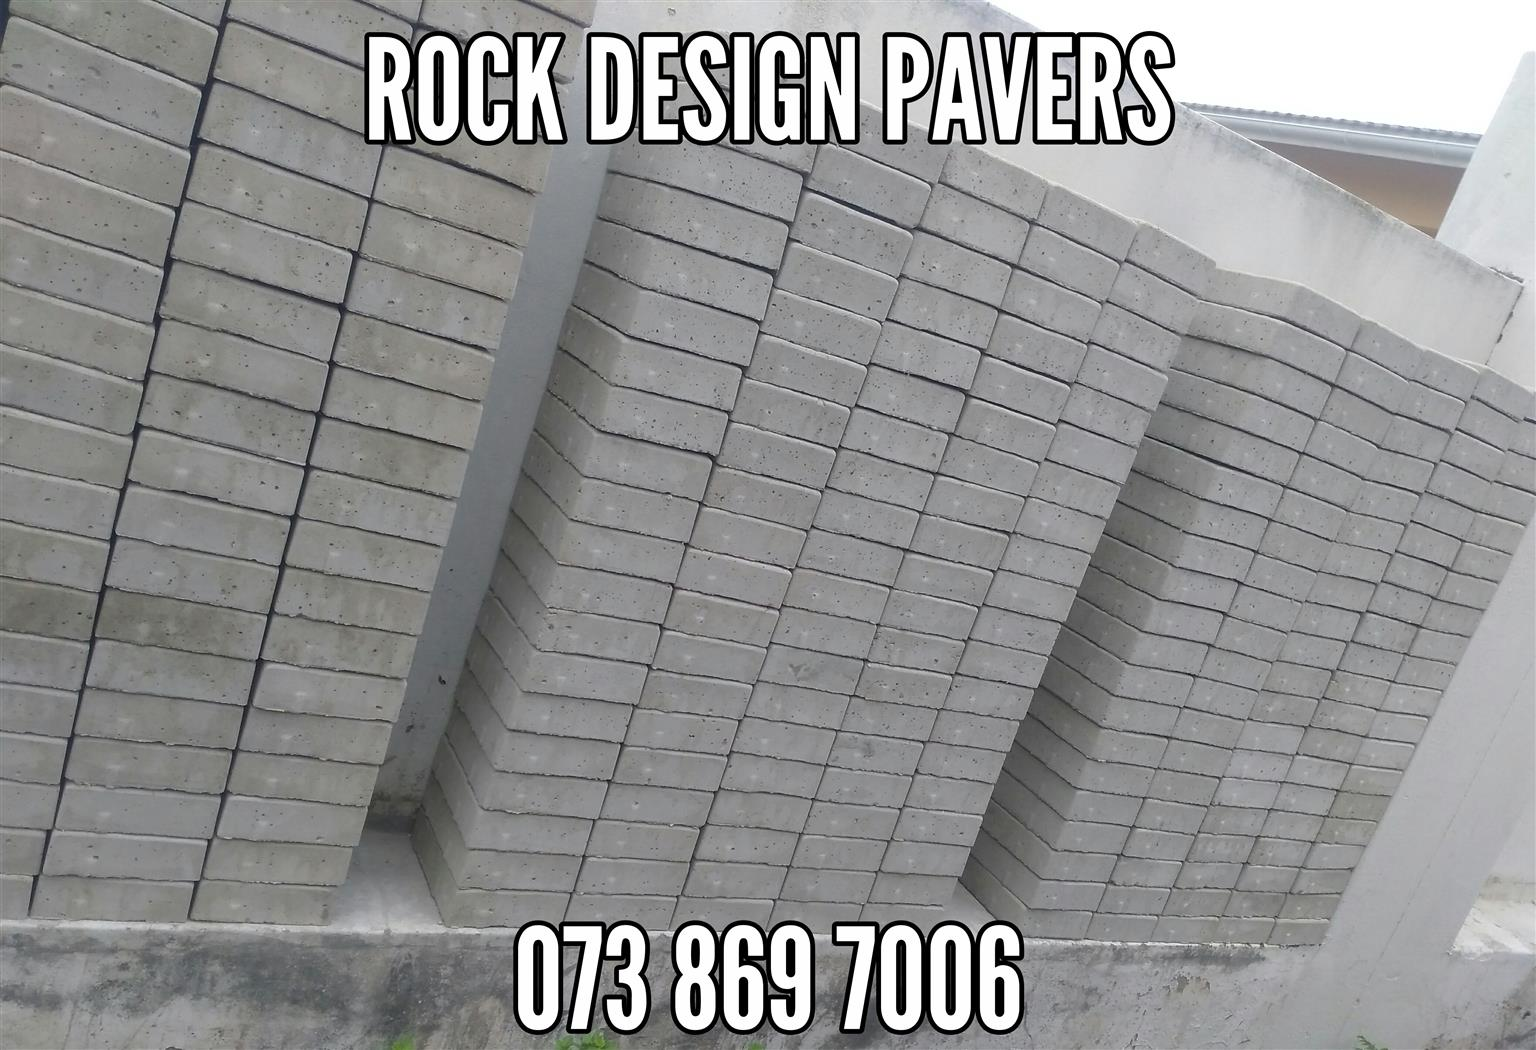 400 ROCK Face Pavers TO CLEAR! Paving Blocks